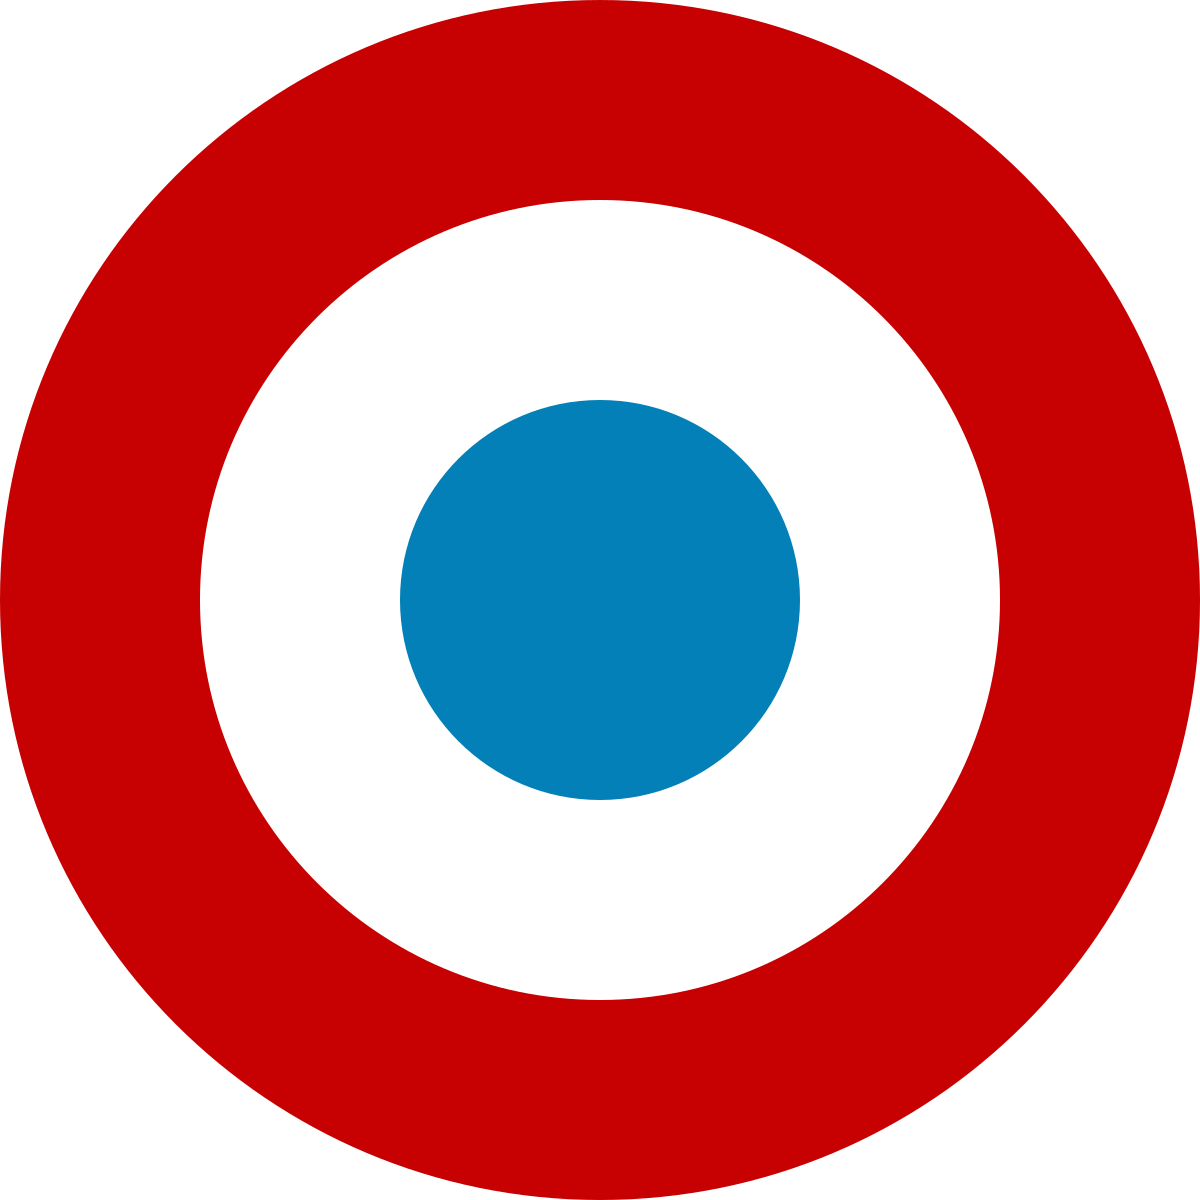 Clipart mod red star graphic stock Roundel - Wikipedia graphic stock